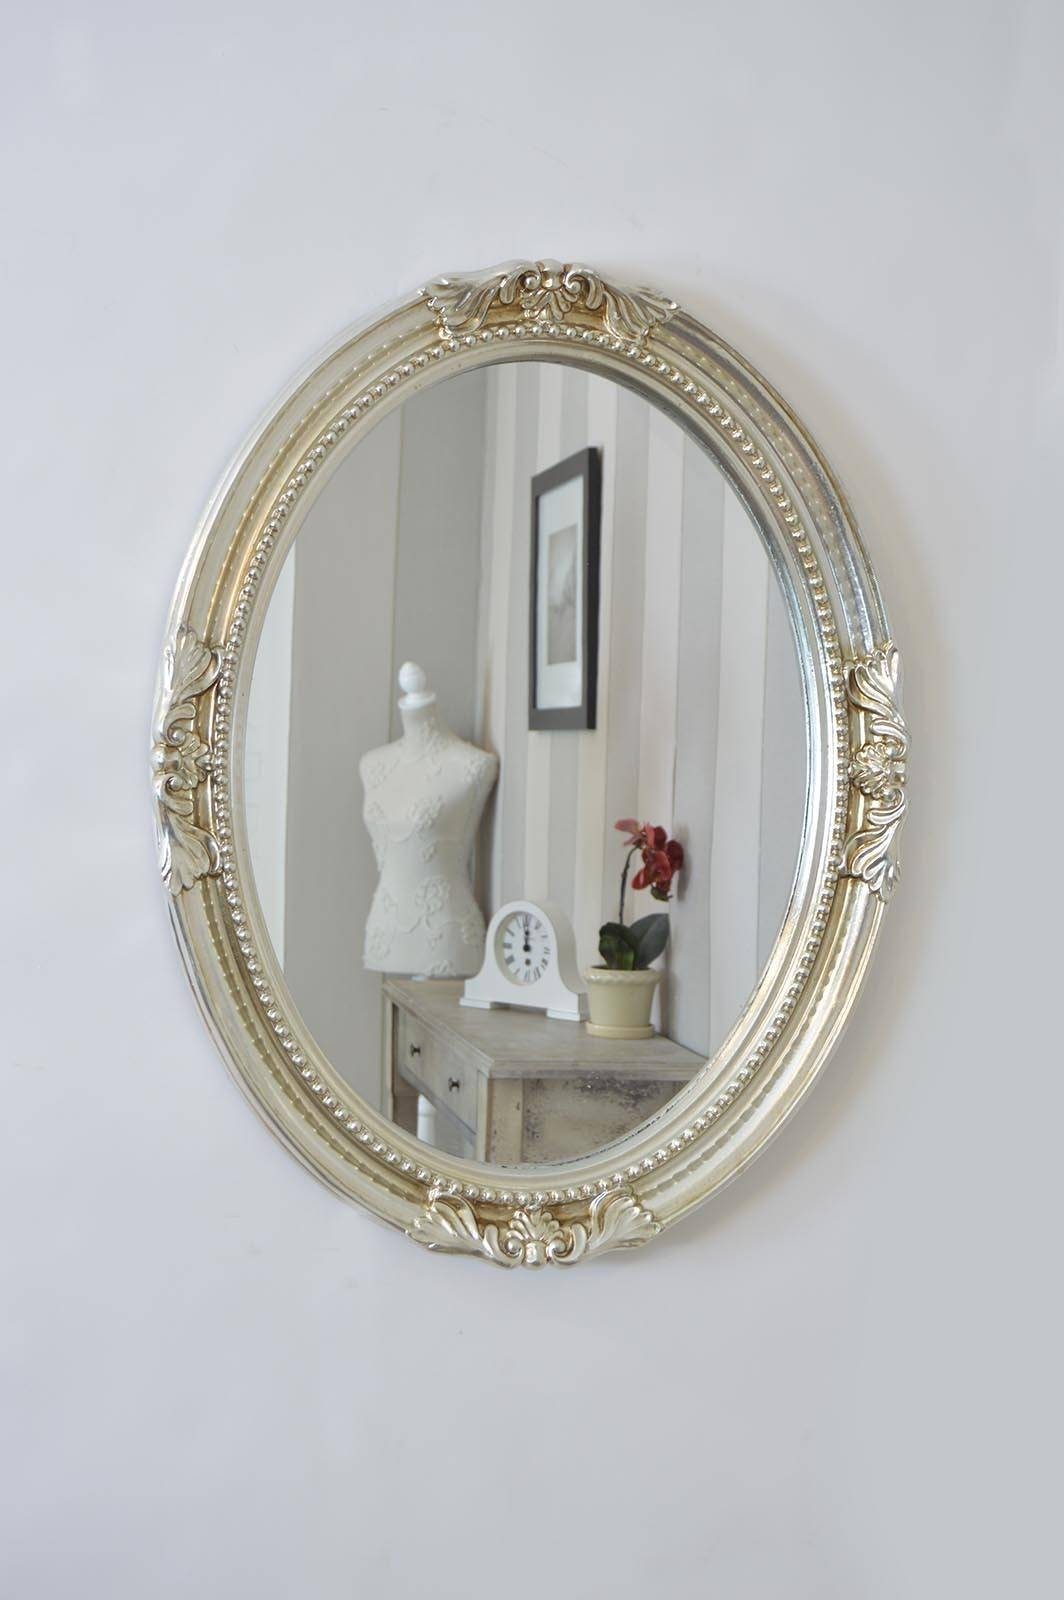 5 Tips For Best Choices Of Oval Wall Mirror - Interior Design throughout Large Oval Mirrors (Image 1 of 25)